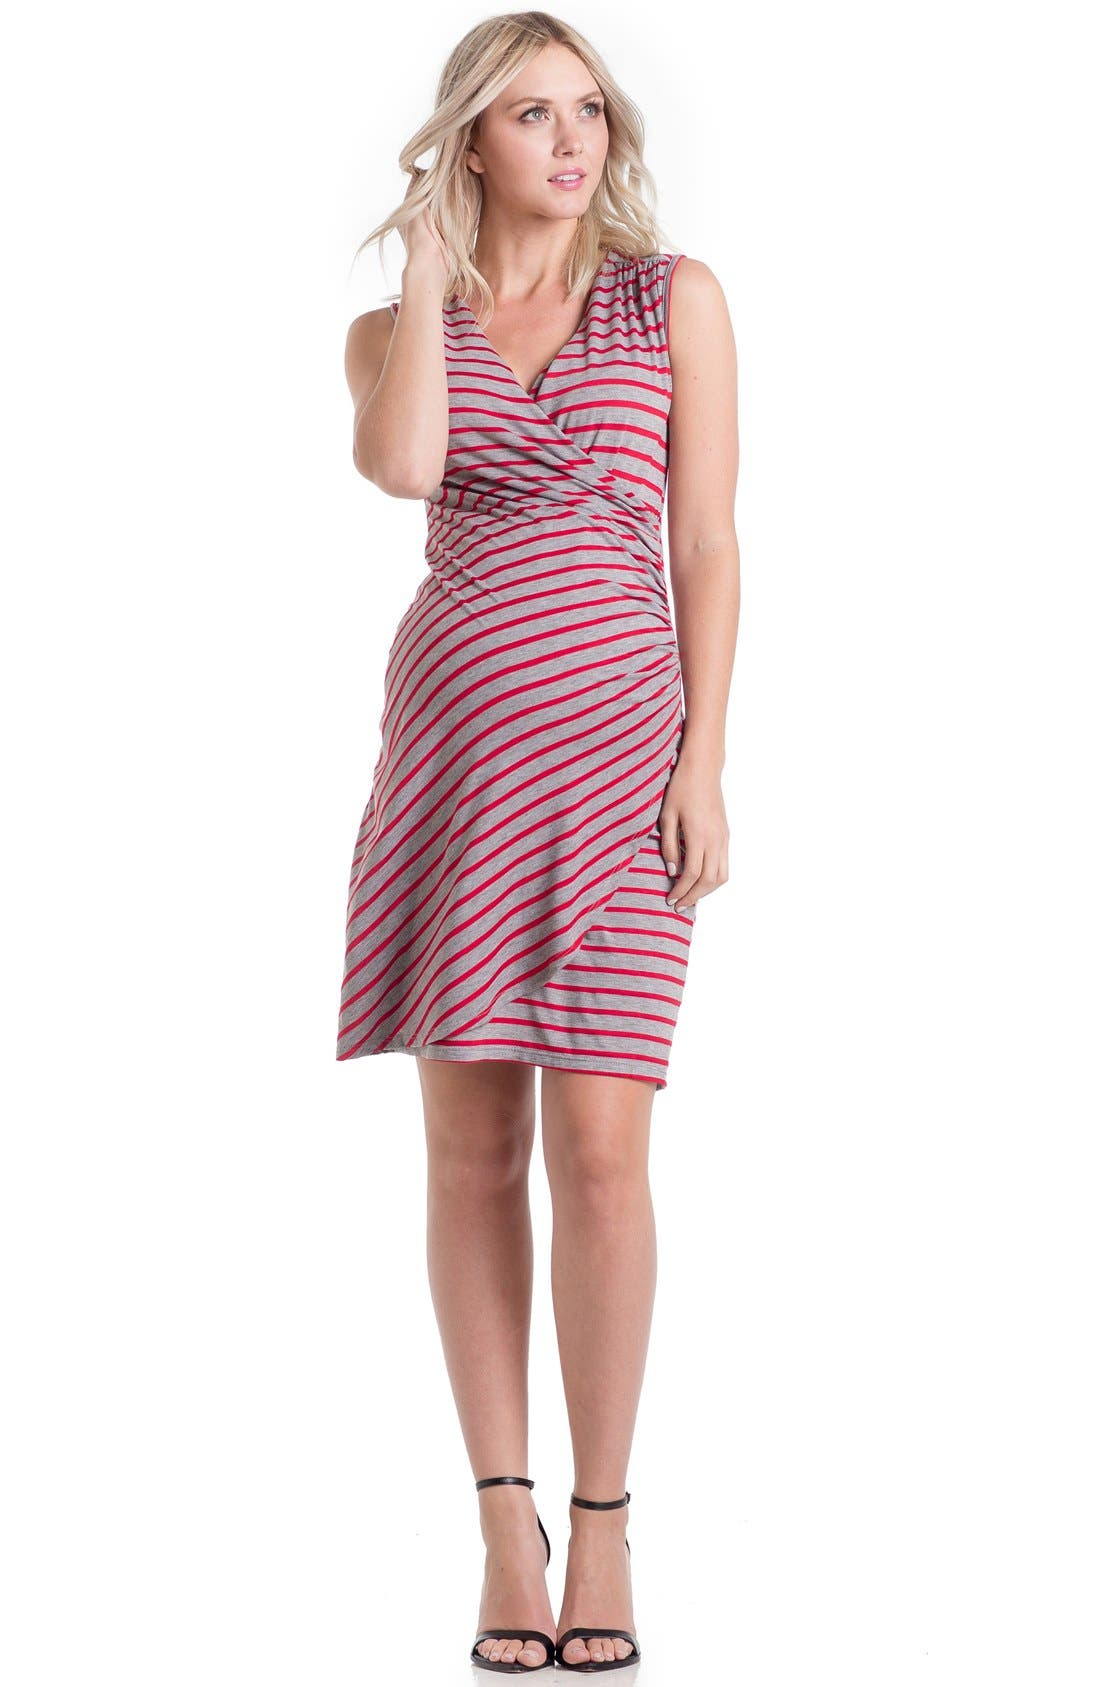 'Brynley' Surplice Maternity Dress,                             Alternate thumbnail 3, color,                             061